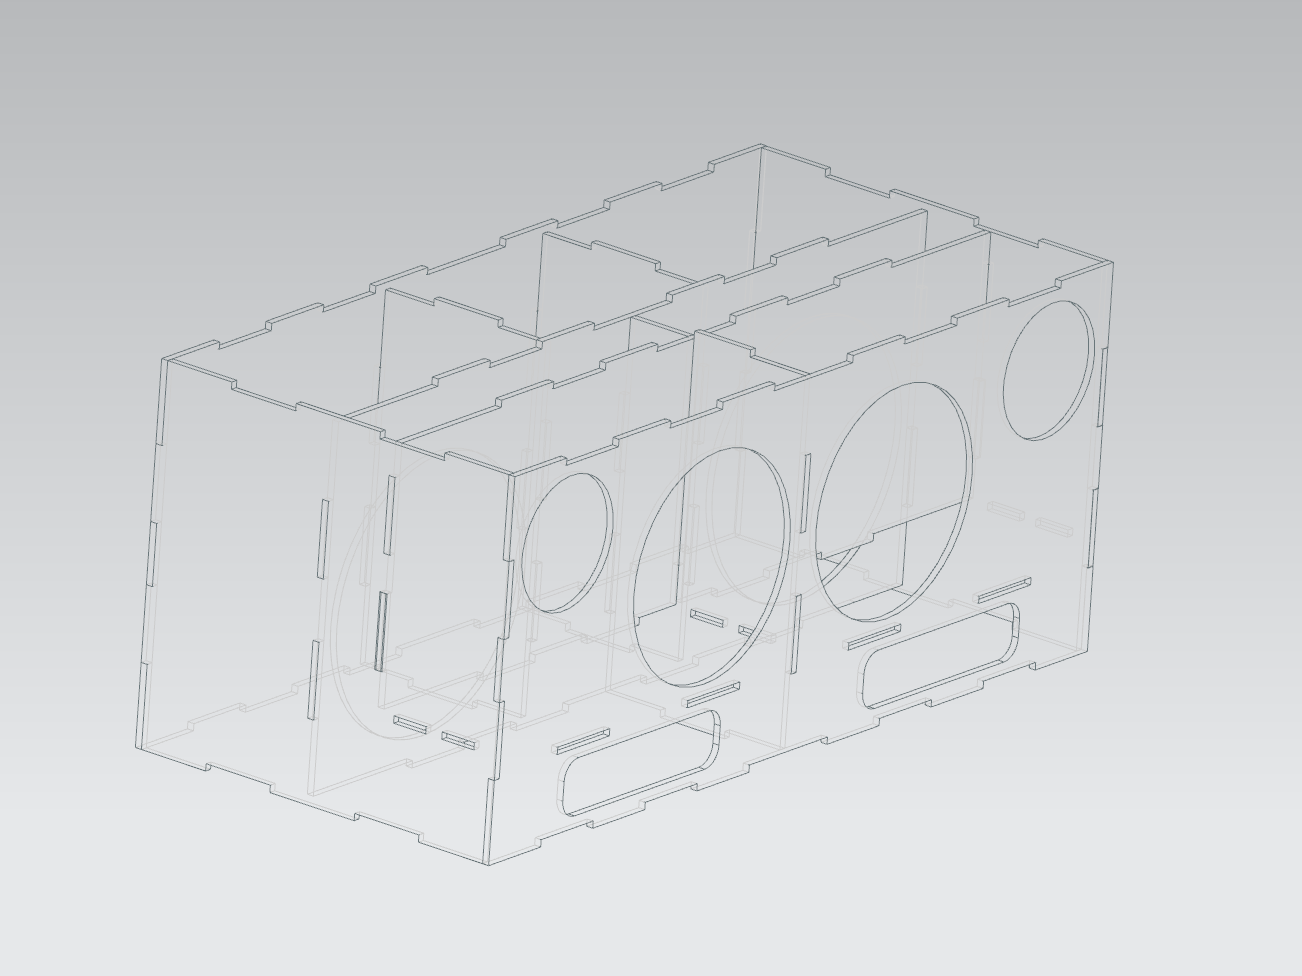 Laser Cut Speaker Enclosure Crossovers Circuit Diagram Stock Vector For T A Width Of 1875 Inches Everything Is Fitting Together Nicely So Far The Empty Compartment In Back Middle Amp